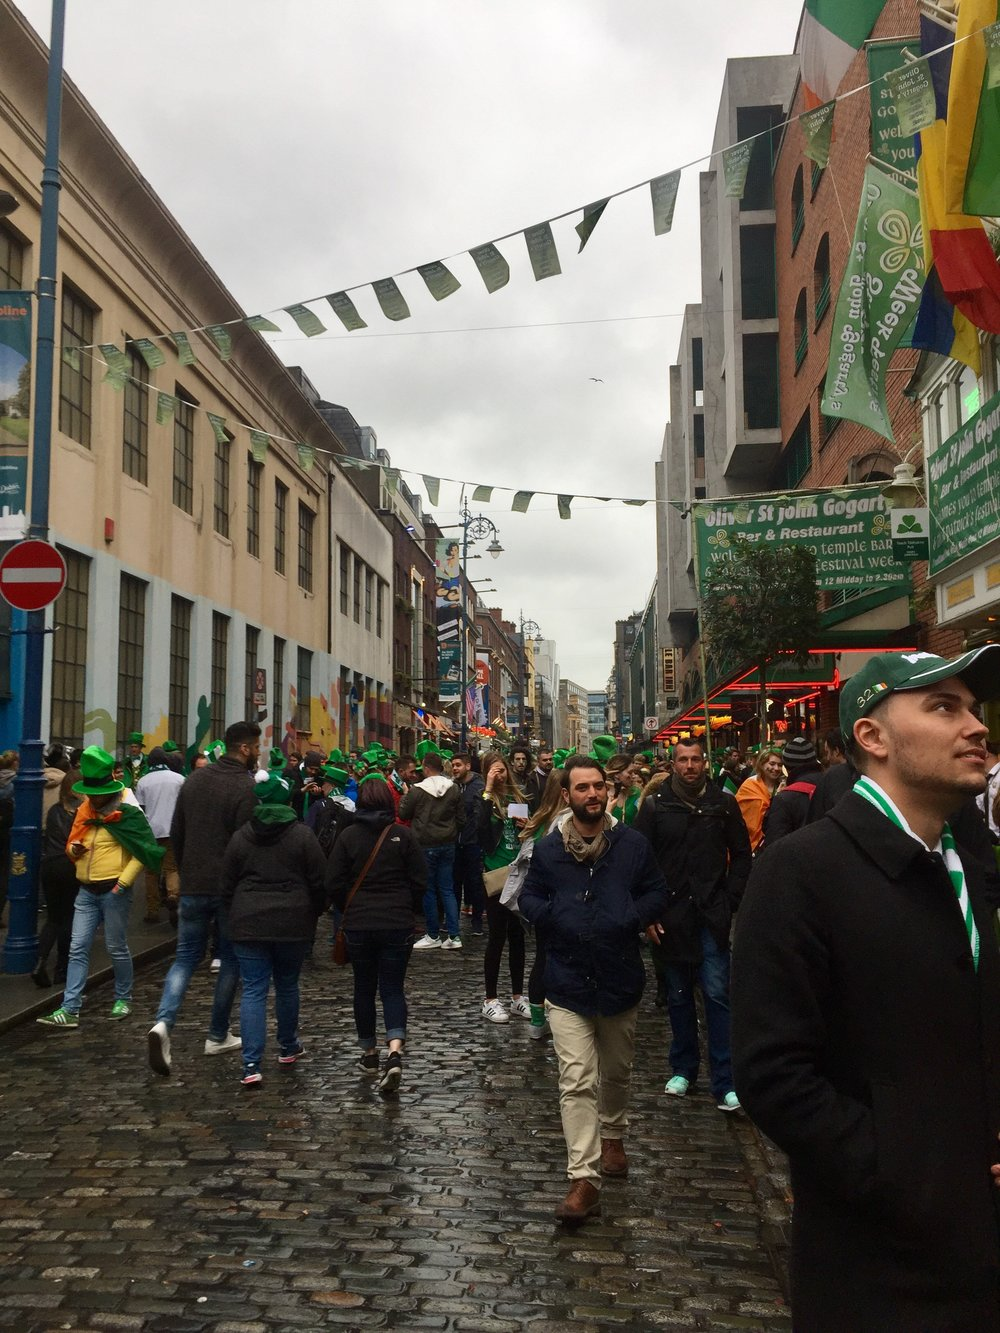 Temple Bar filling with revelers